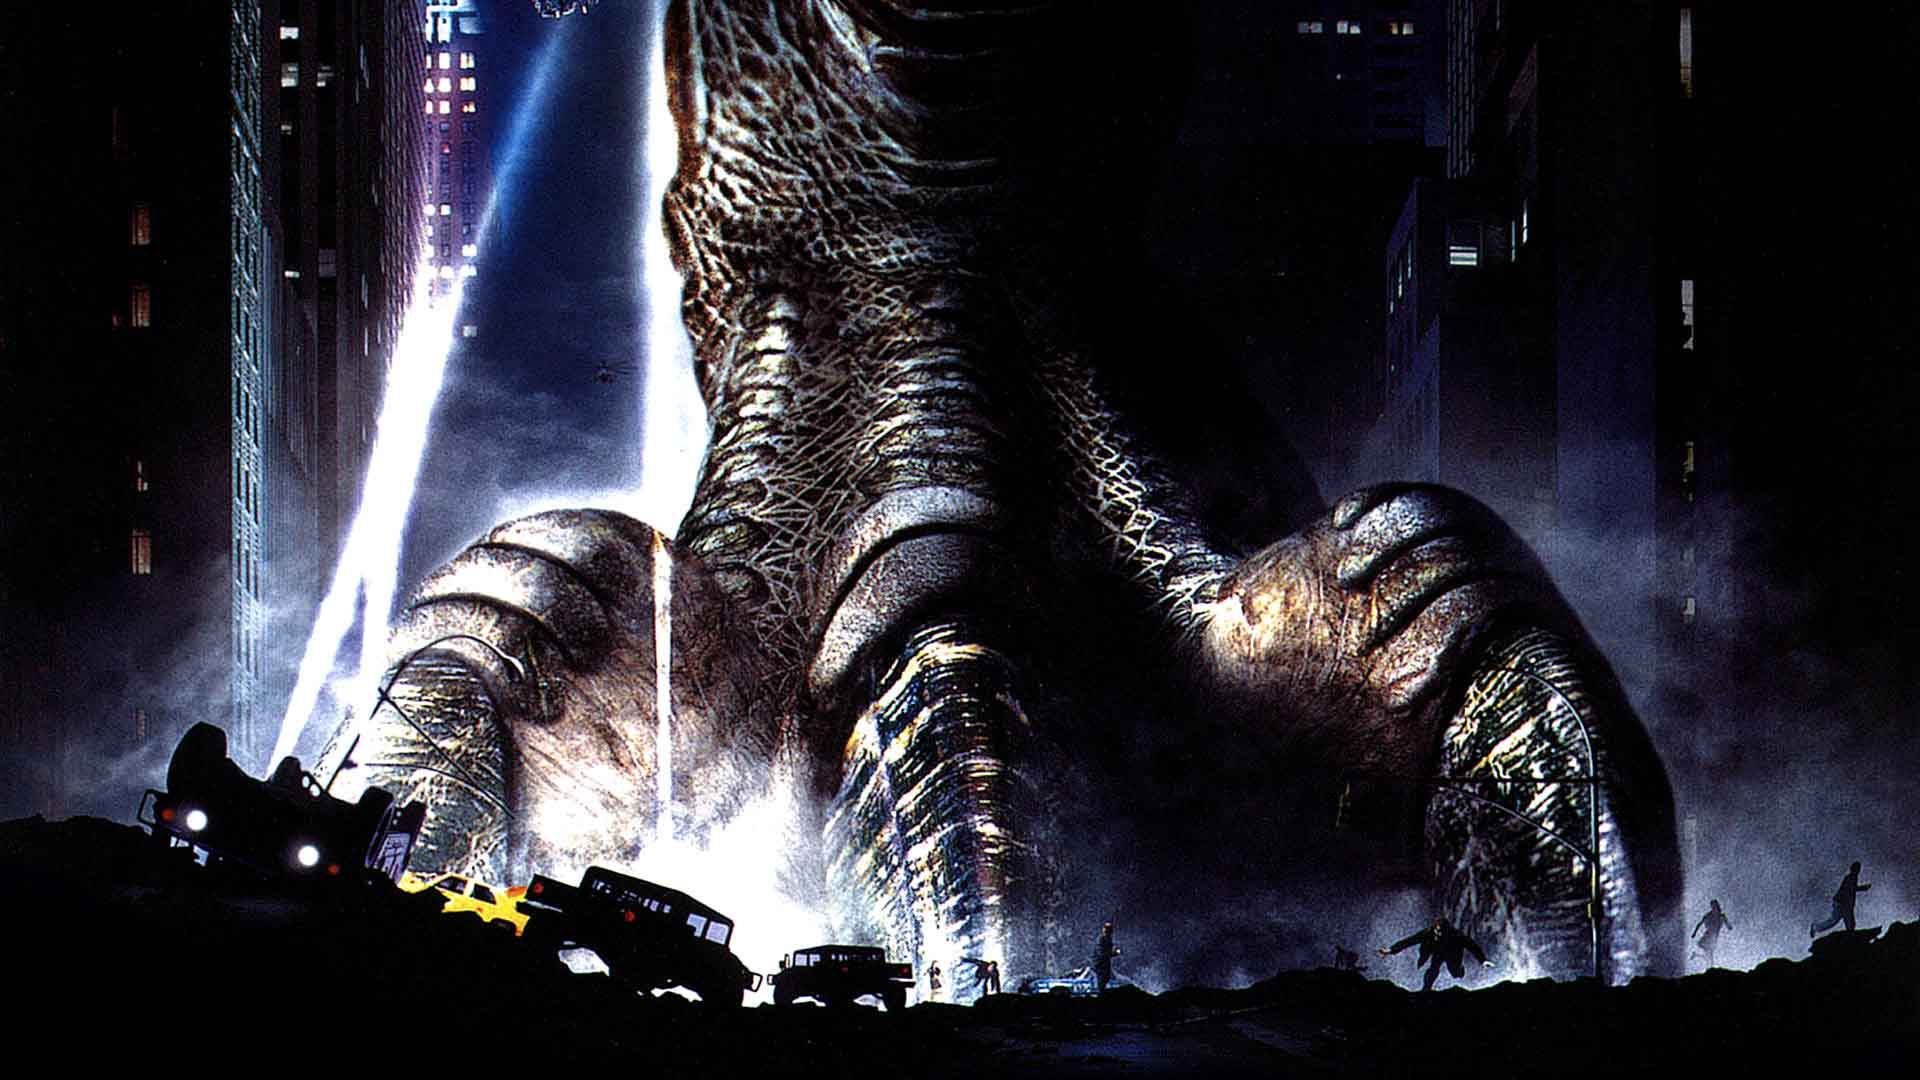 godzilla 2014 wallpaper hd 1920x1080